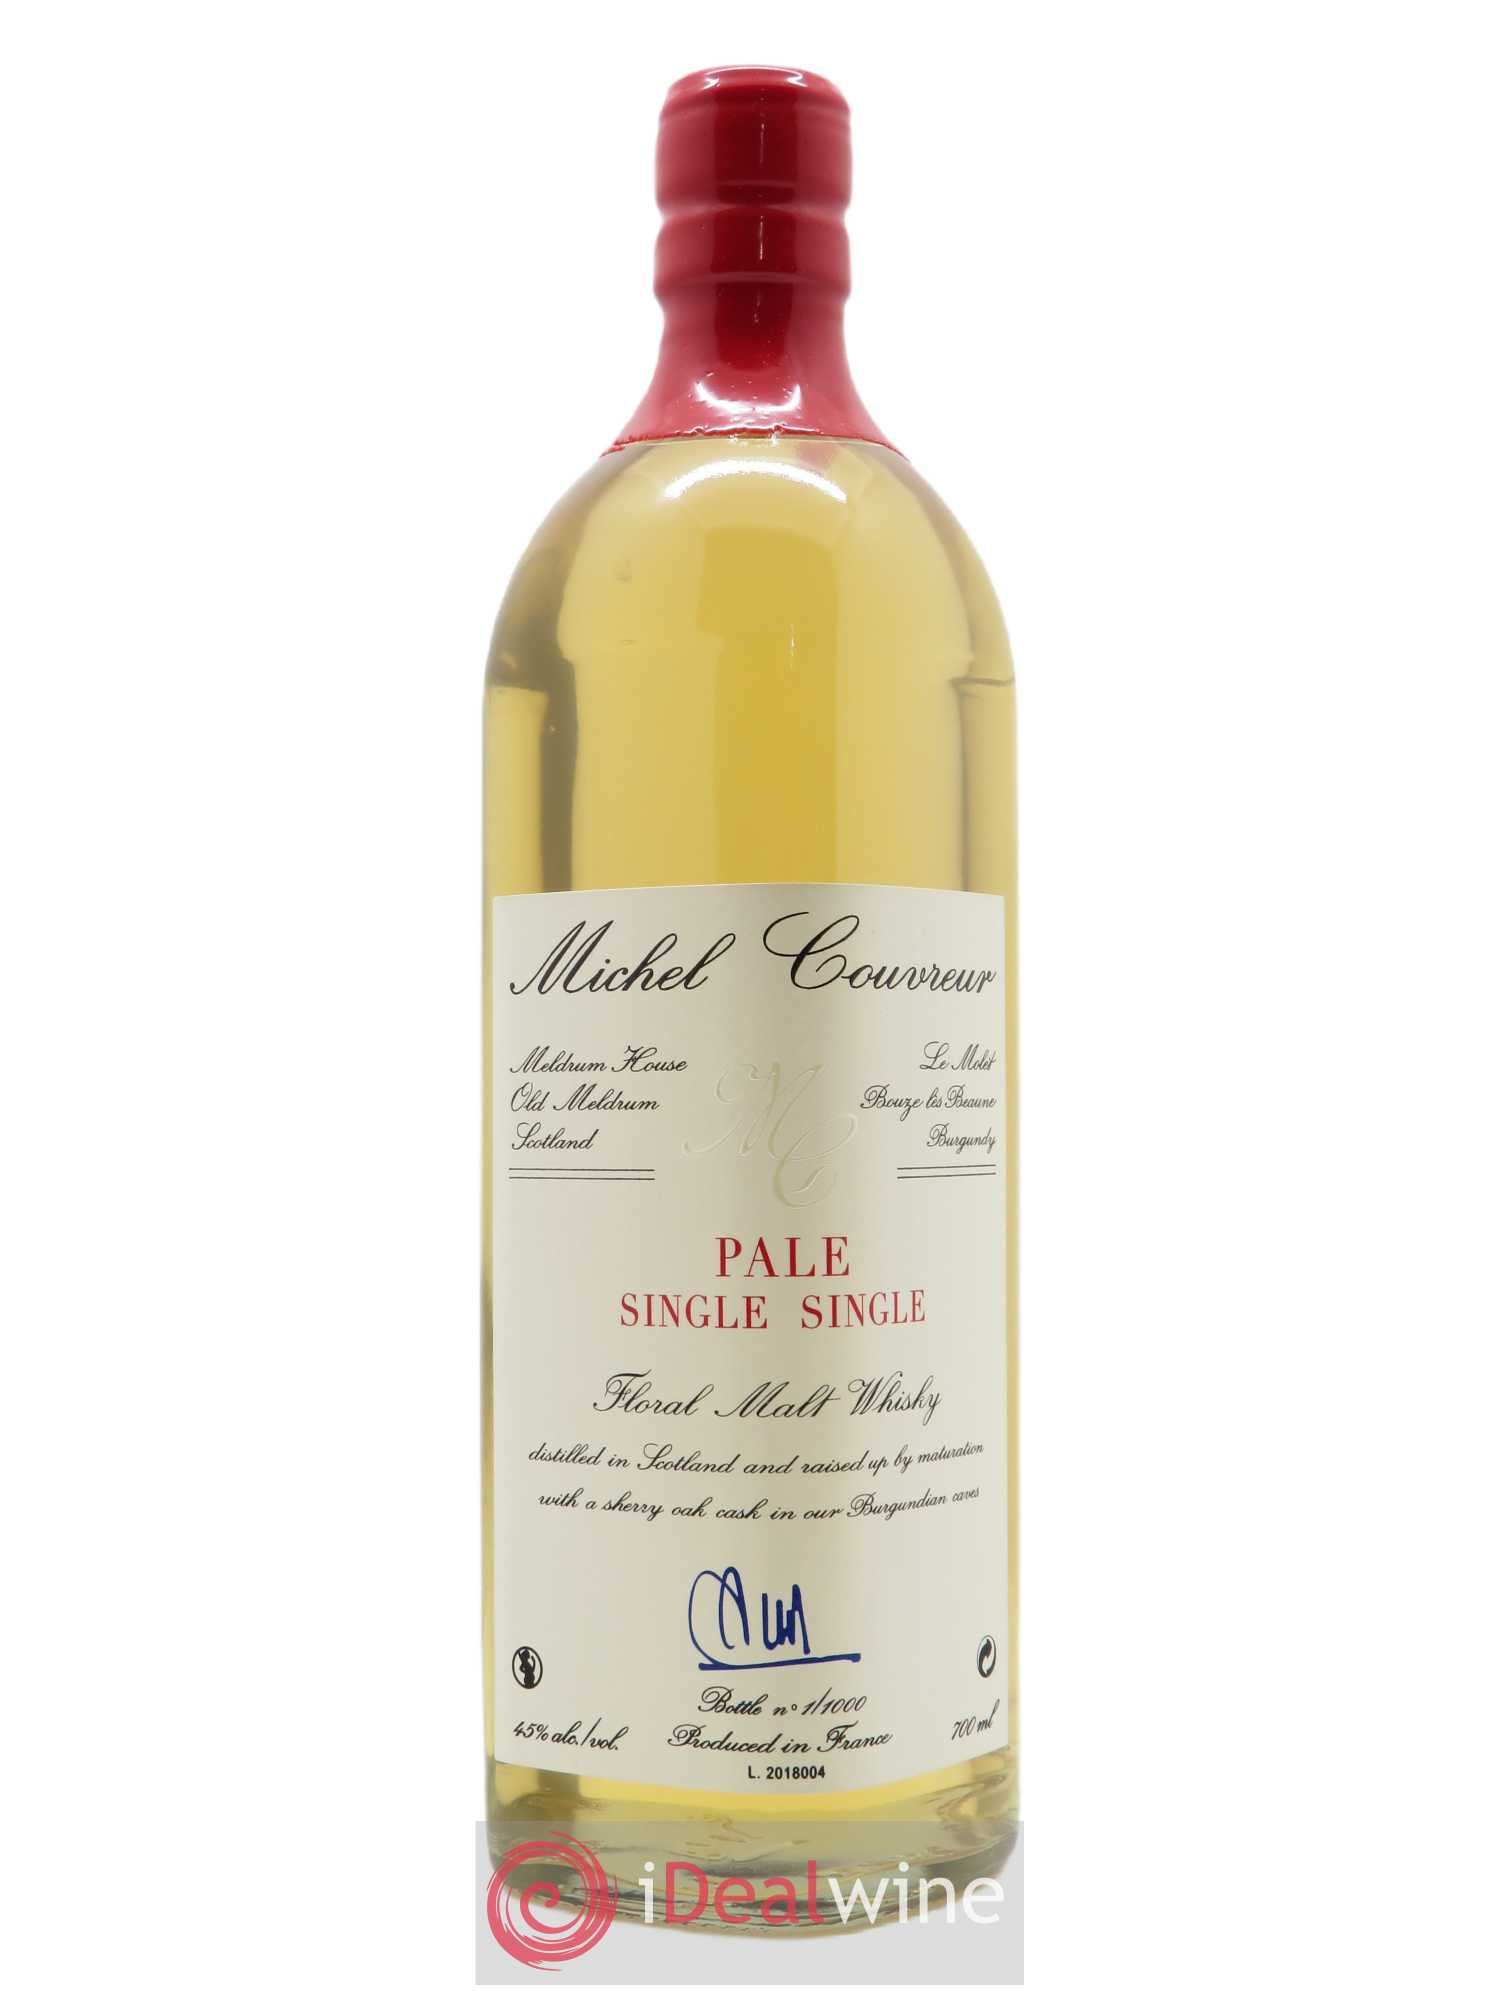 Whisky Pale Single Single Michel Couvreur (70cl)  - Lot de 1 Bouteille